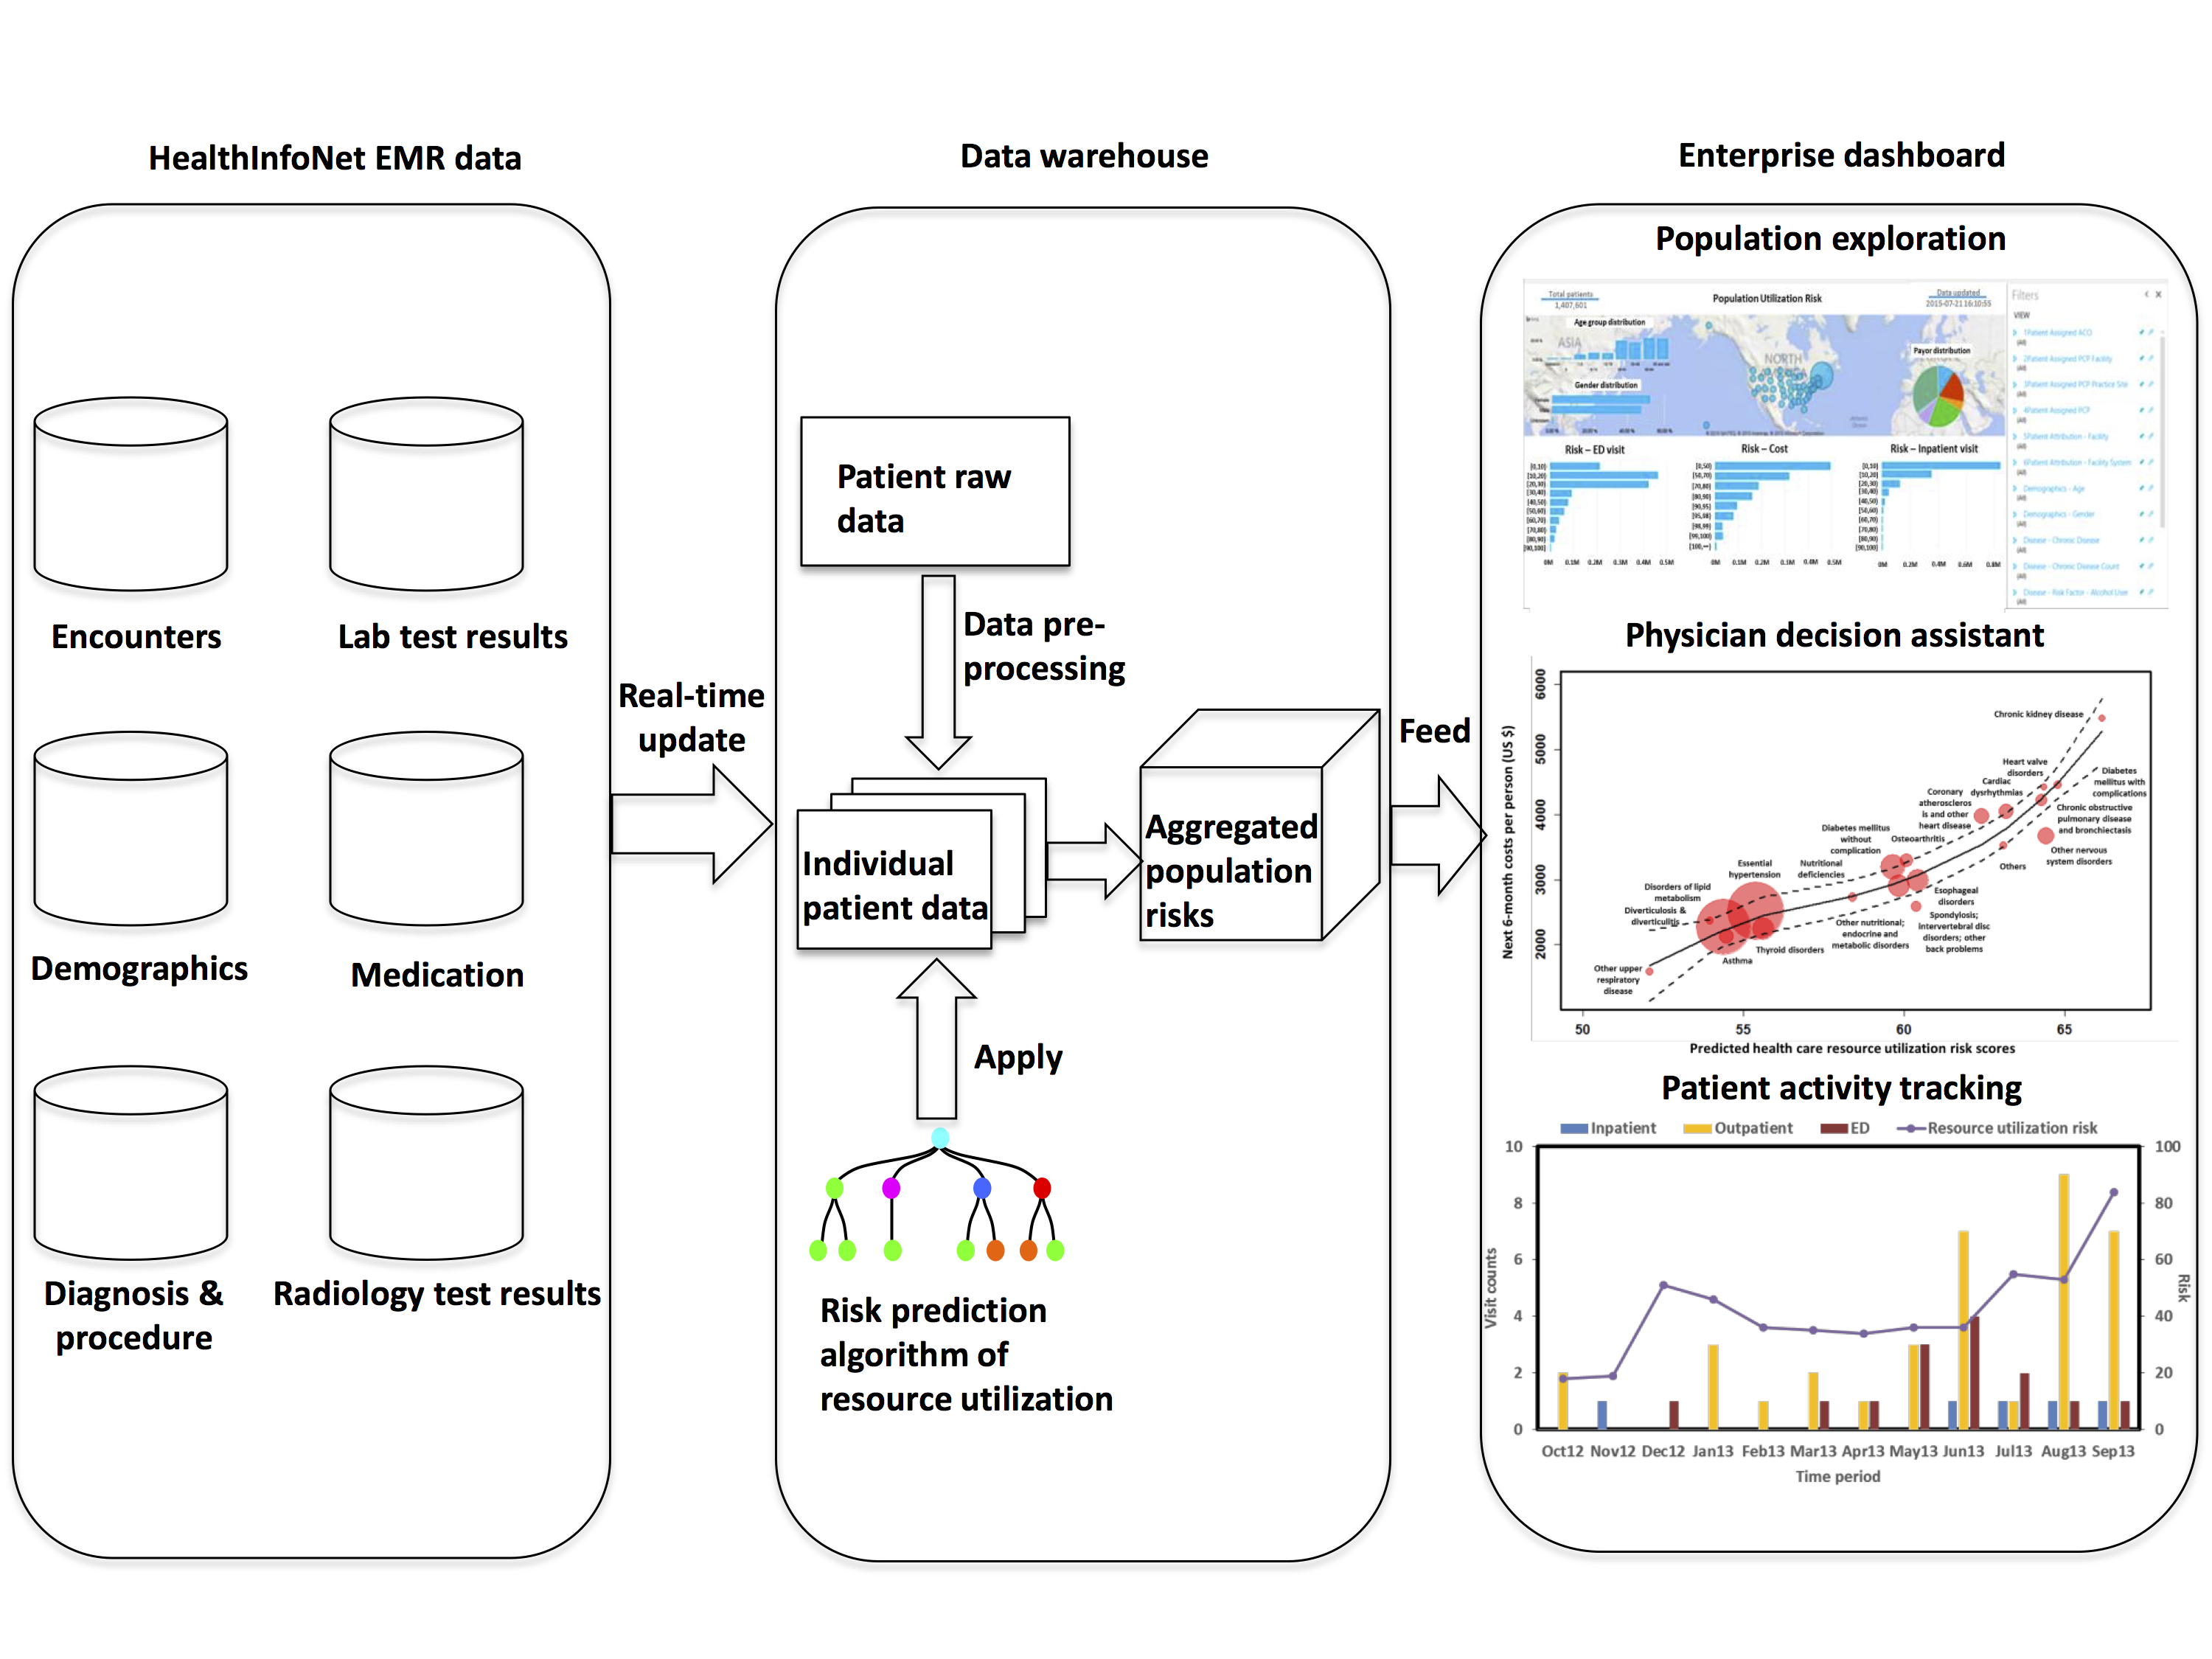 Schematic demonstration of data flow and communications of a population risk exploration system which allows online real time assessment of population